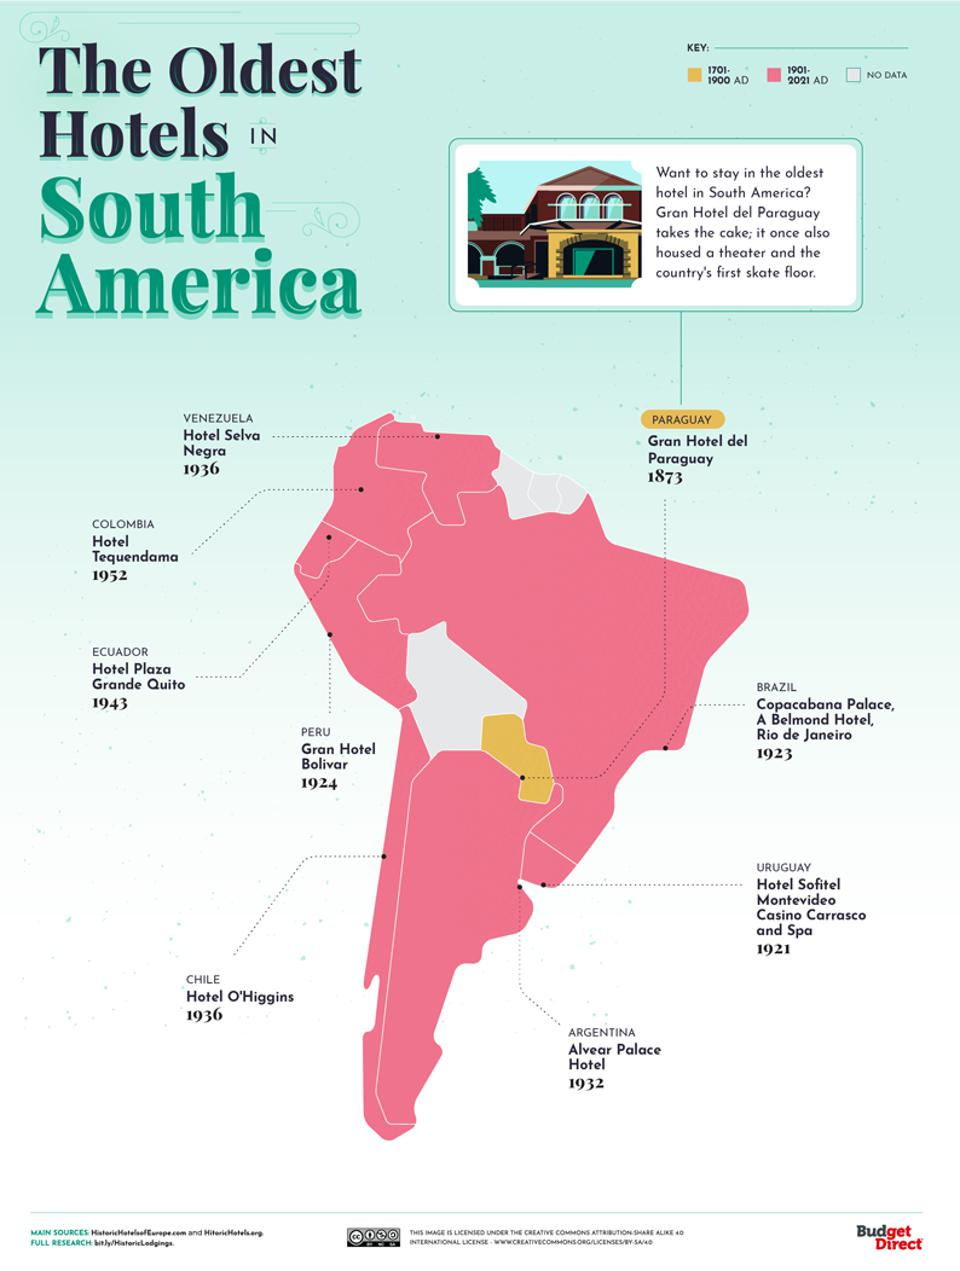 A map of the oldest hotels in South America.